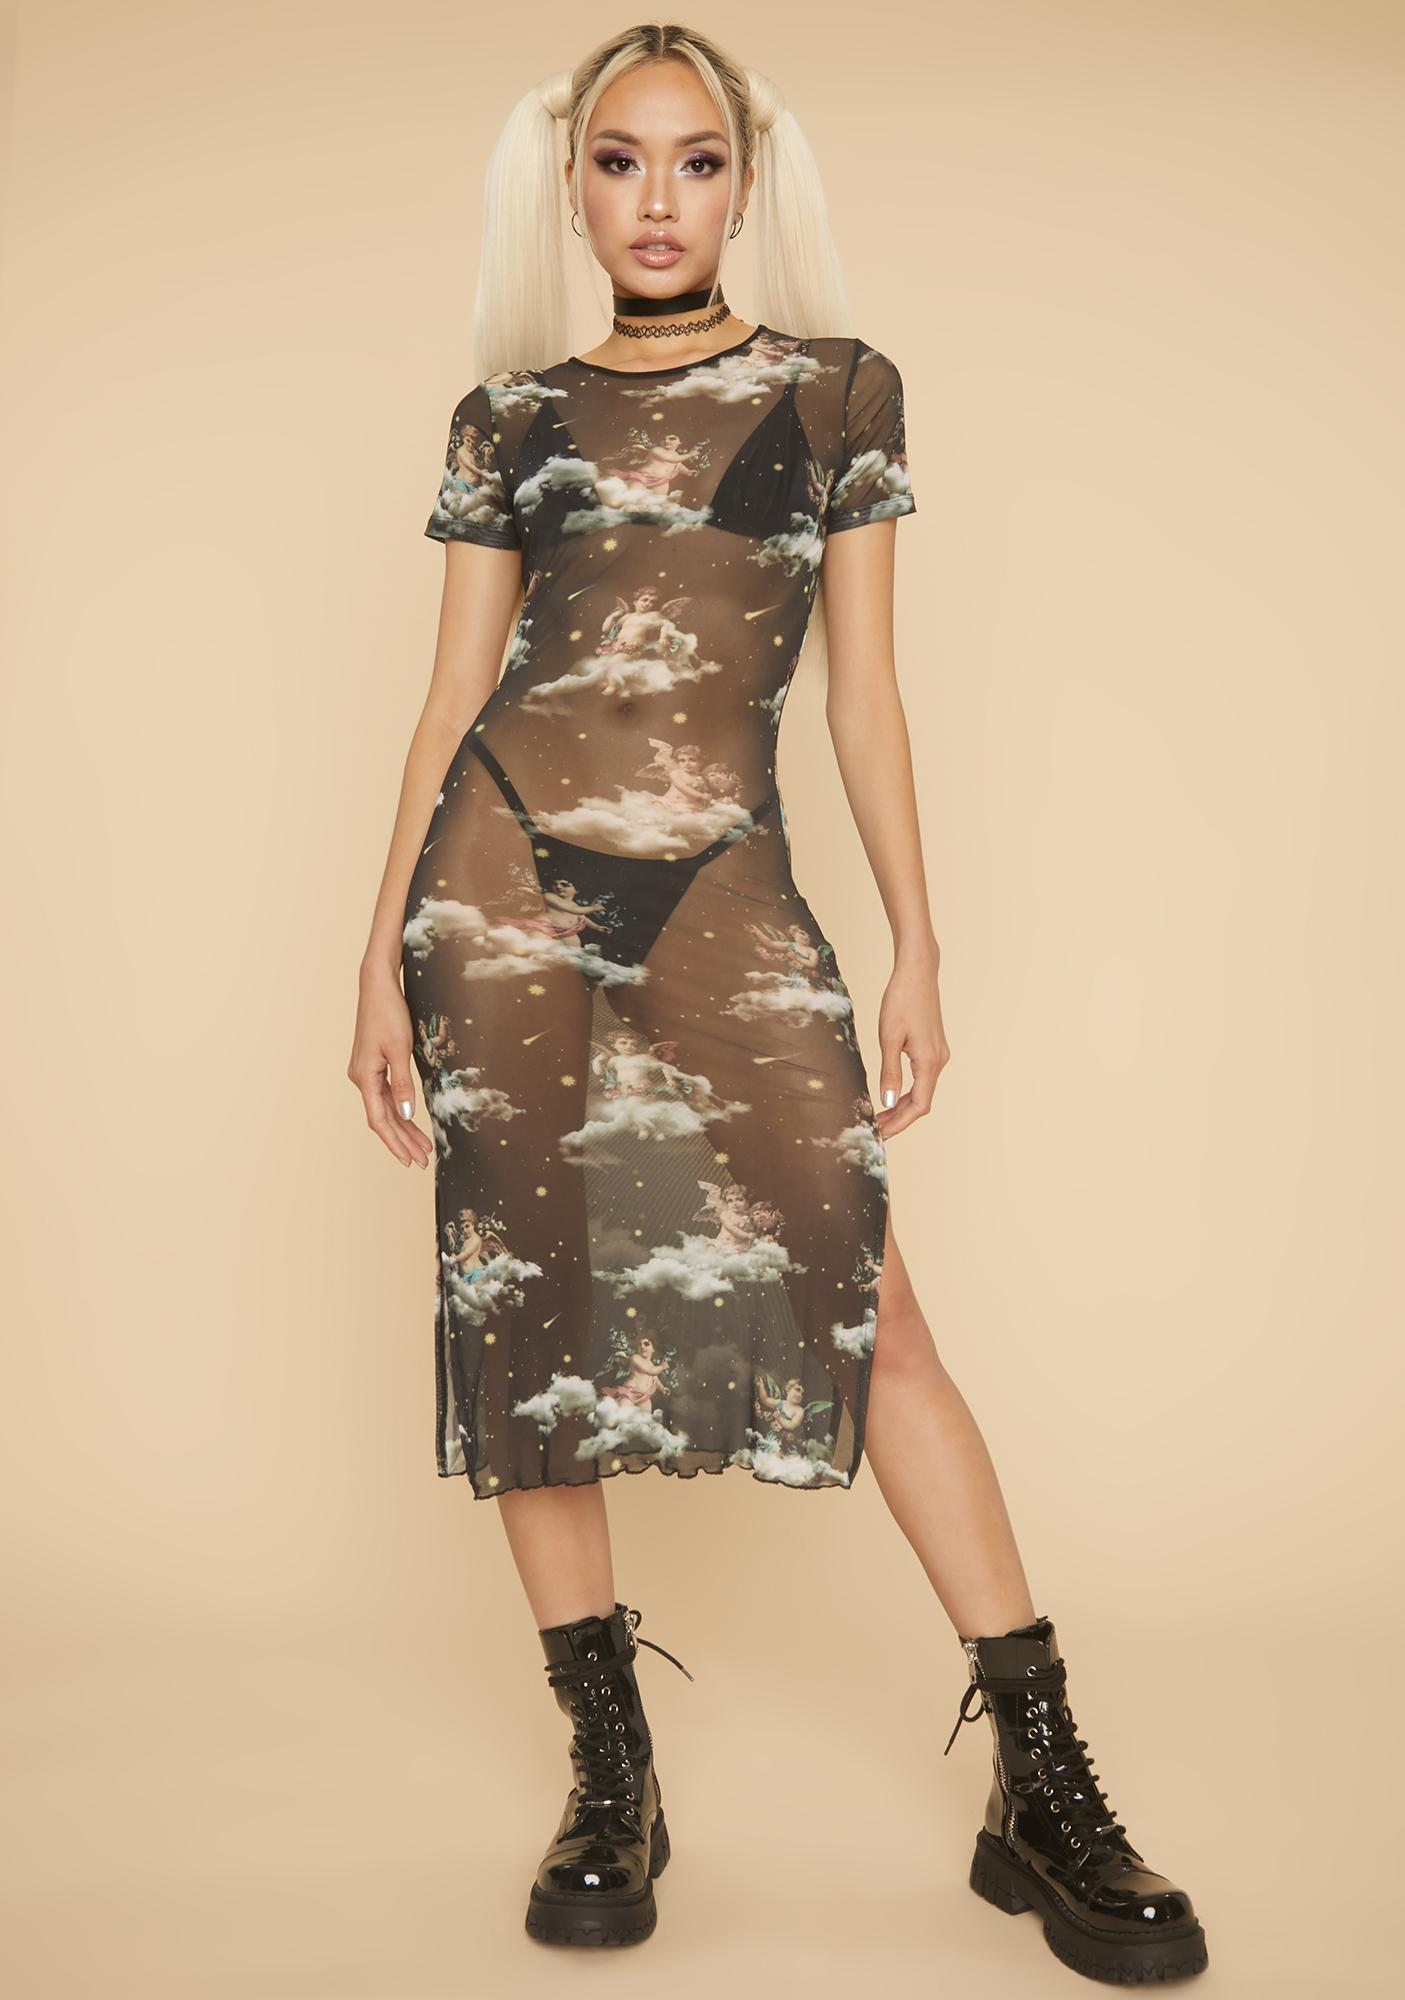 HOROSCOPEZ Far From An Angel Mesh Midi Dress